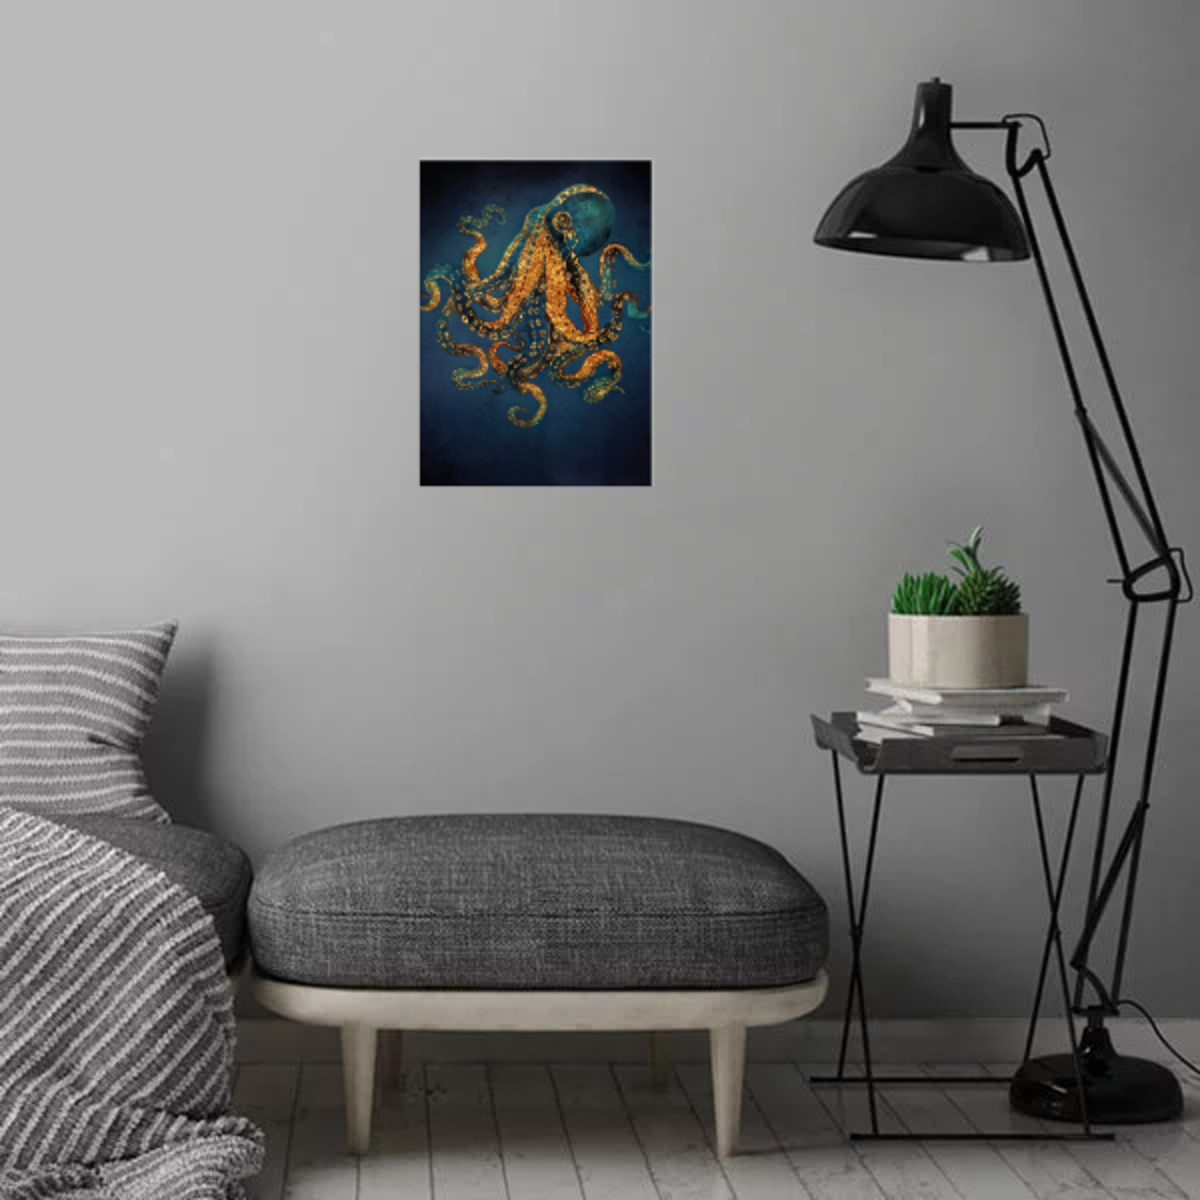 This is one of the best-selling designs on Displate.